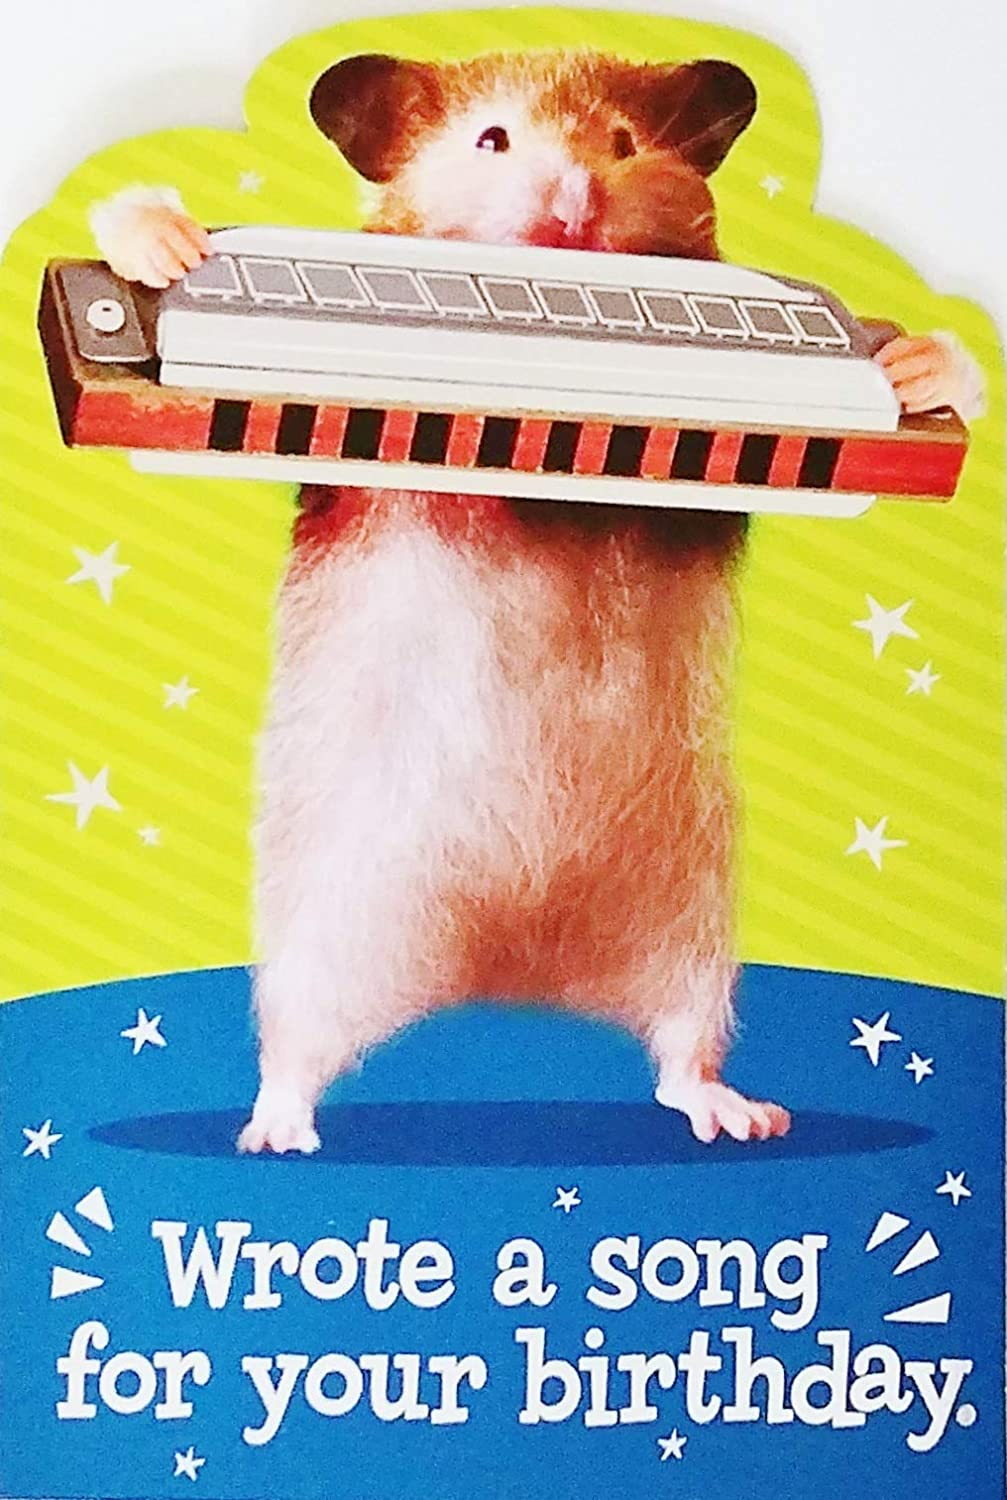 Amazon Com Wrote A Song For Your Birthday Funny Happy Birthday Greeting Card With Hamster Playing Harmonica Office Products